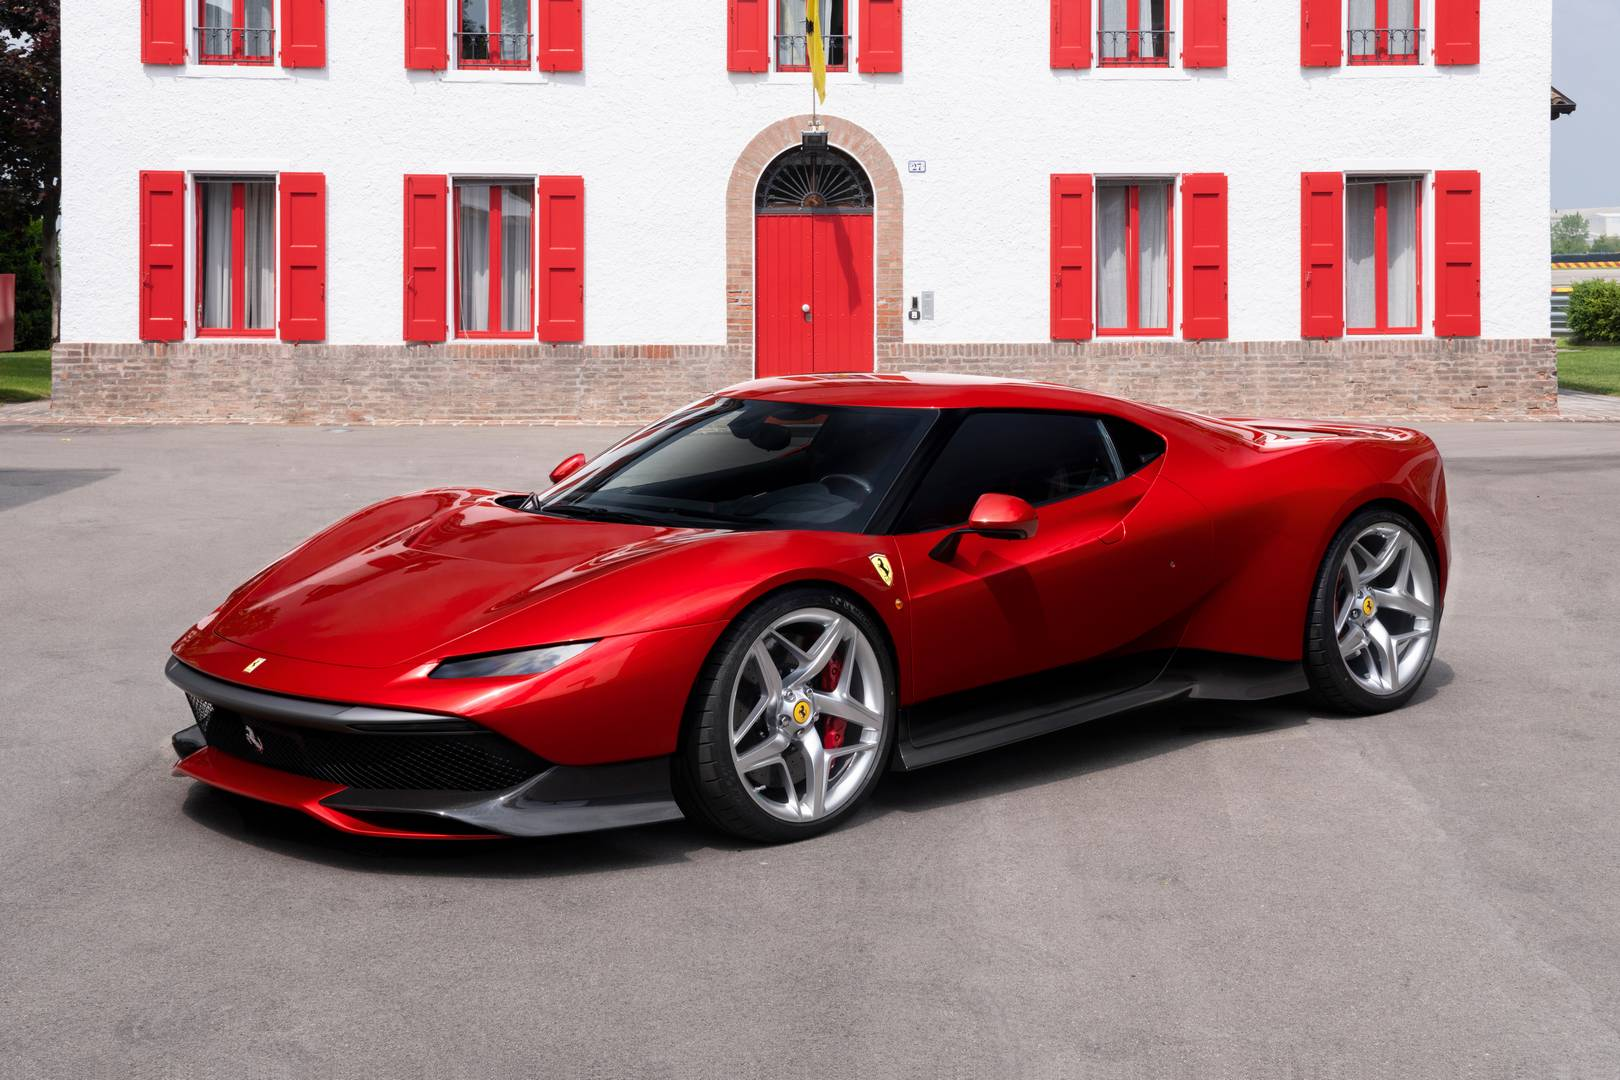 Official: 1 of 1 Ferrari SP38 Based on 488 GTB - GTspirit